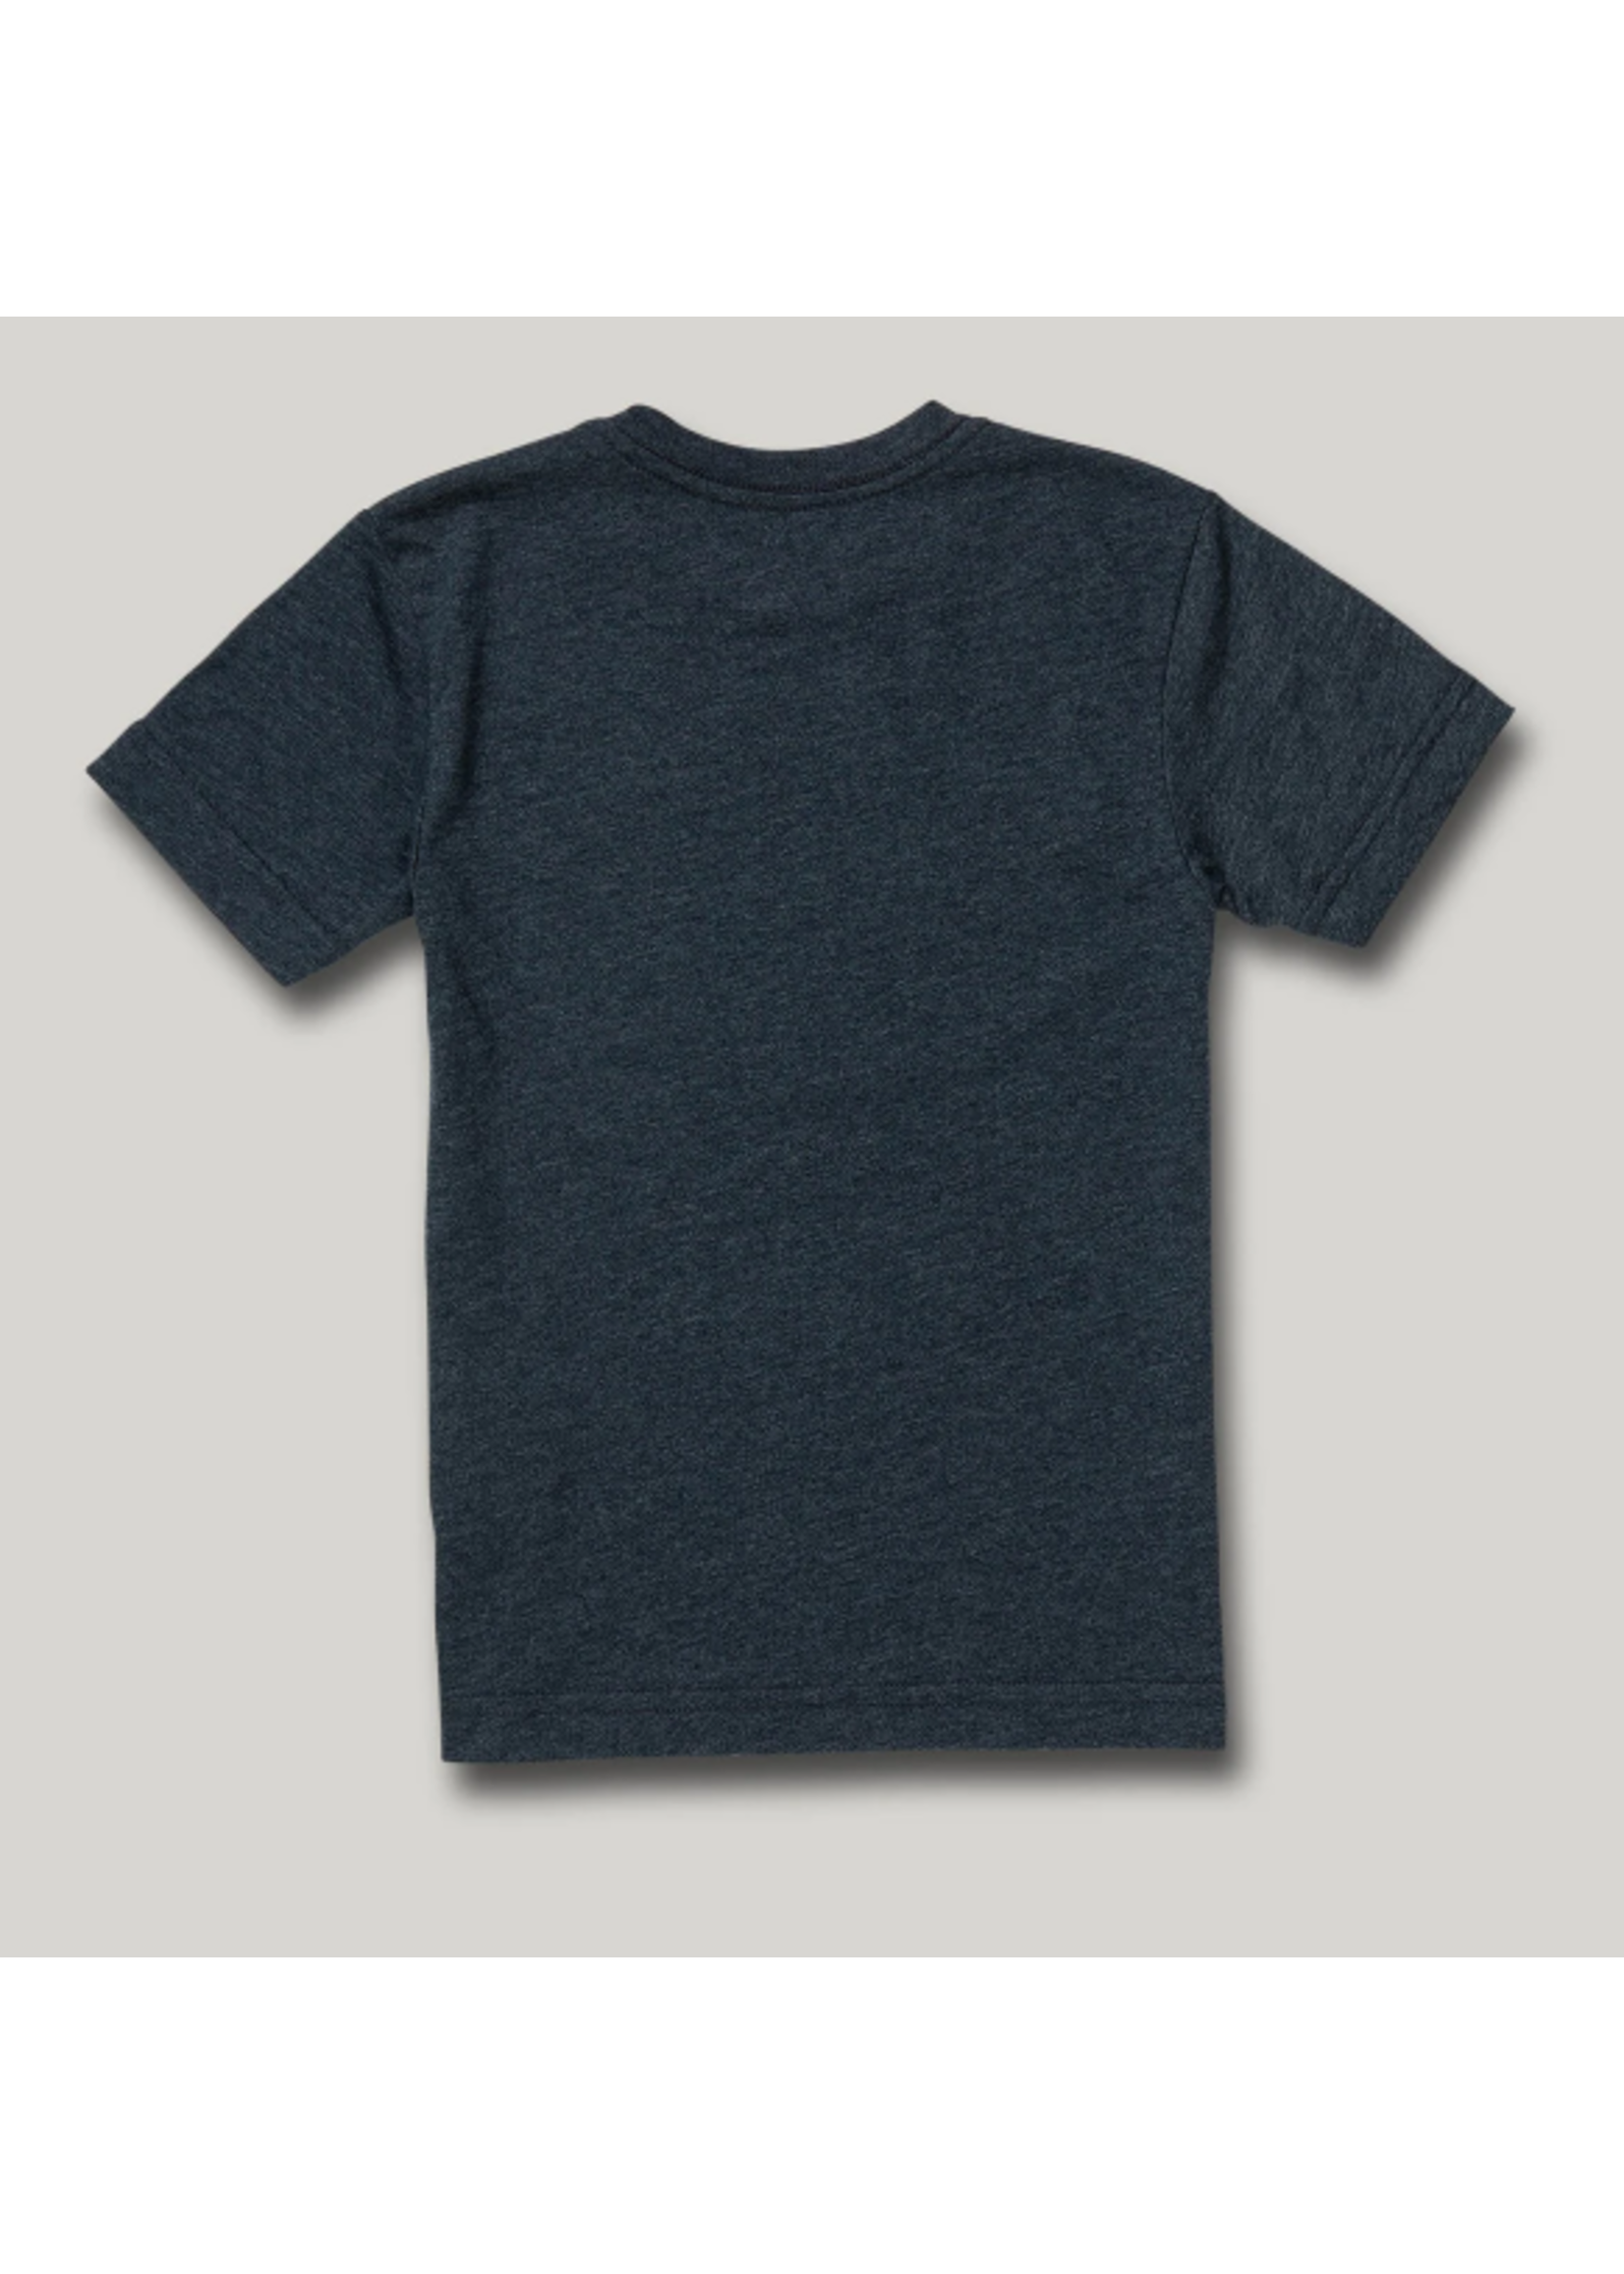 INFILLION S/S TEE YOUTH Y5722008